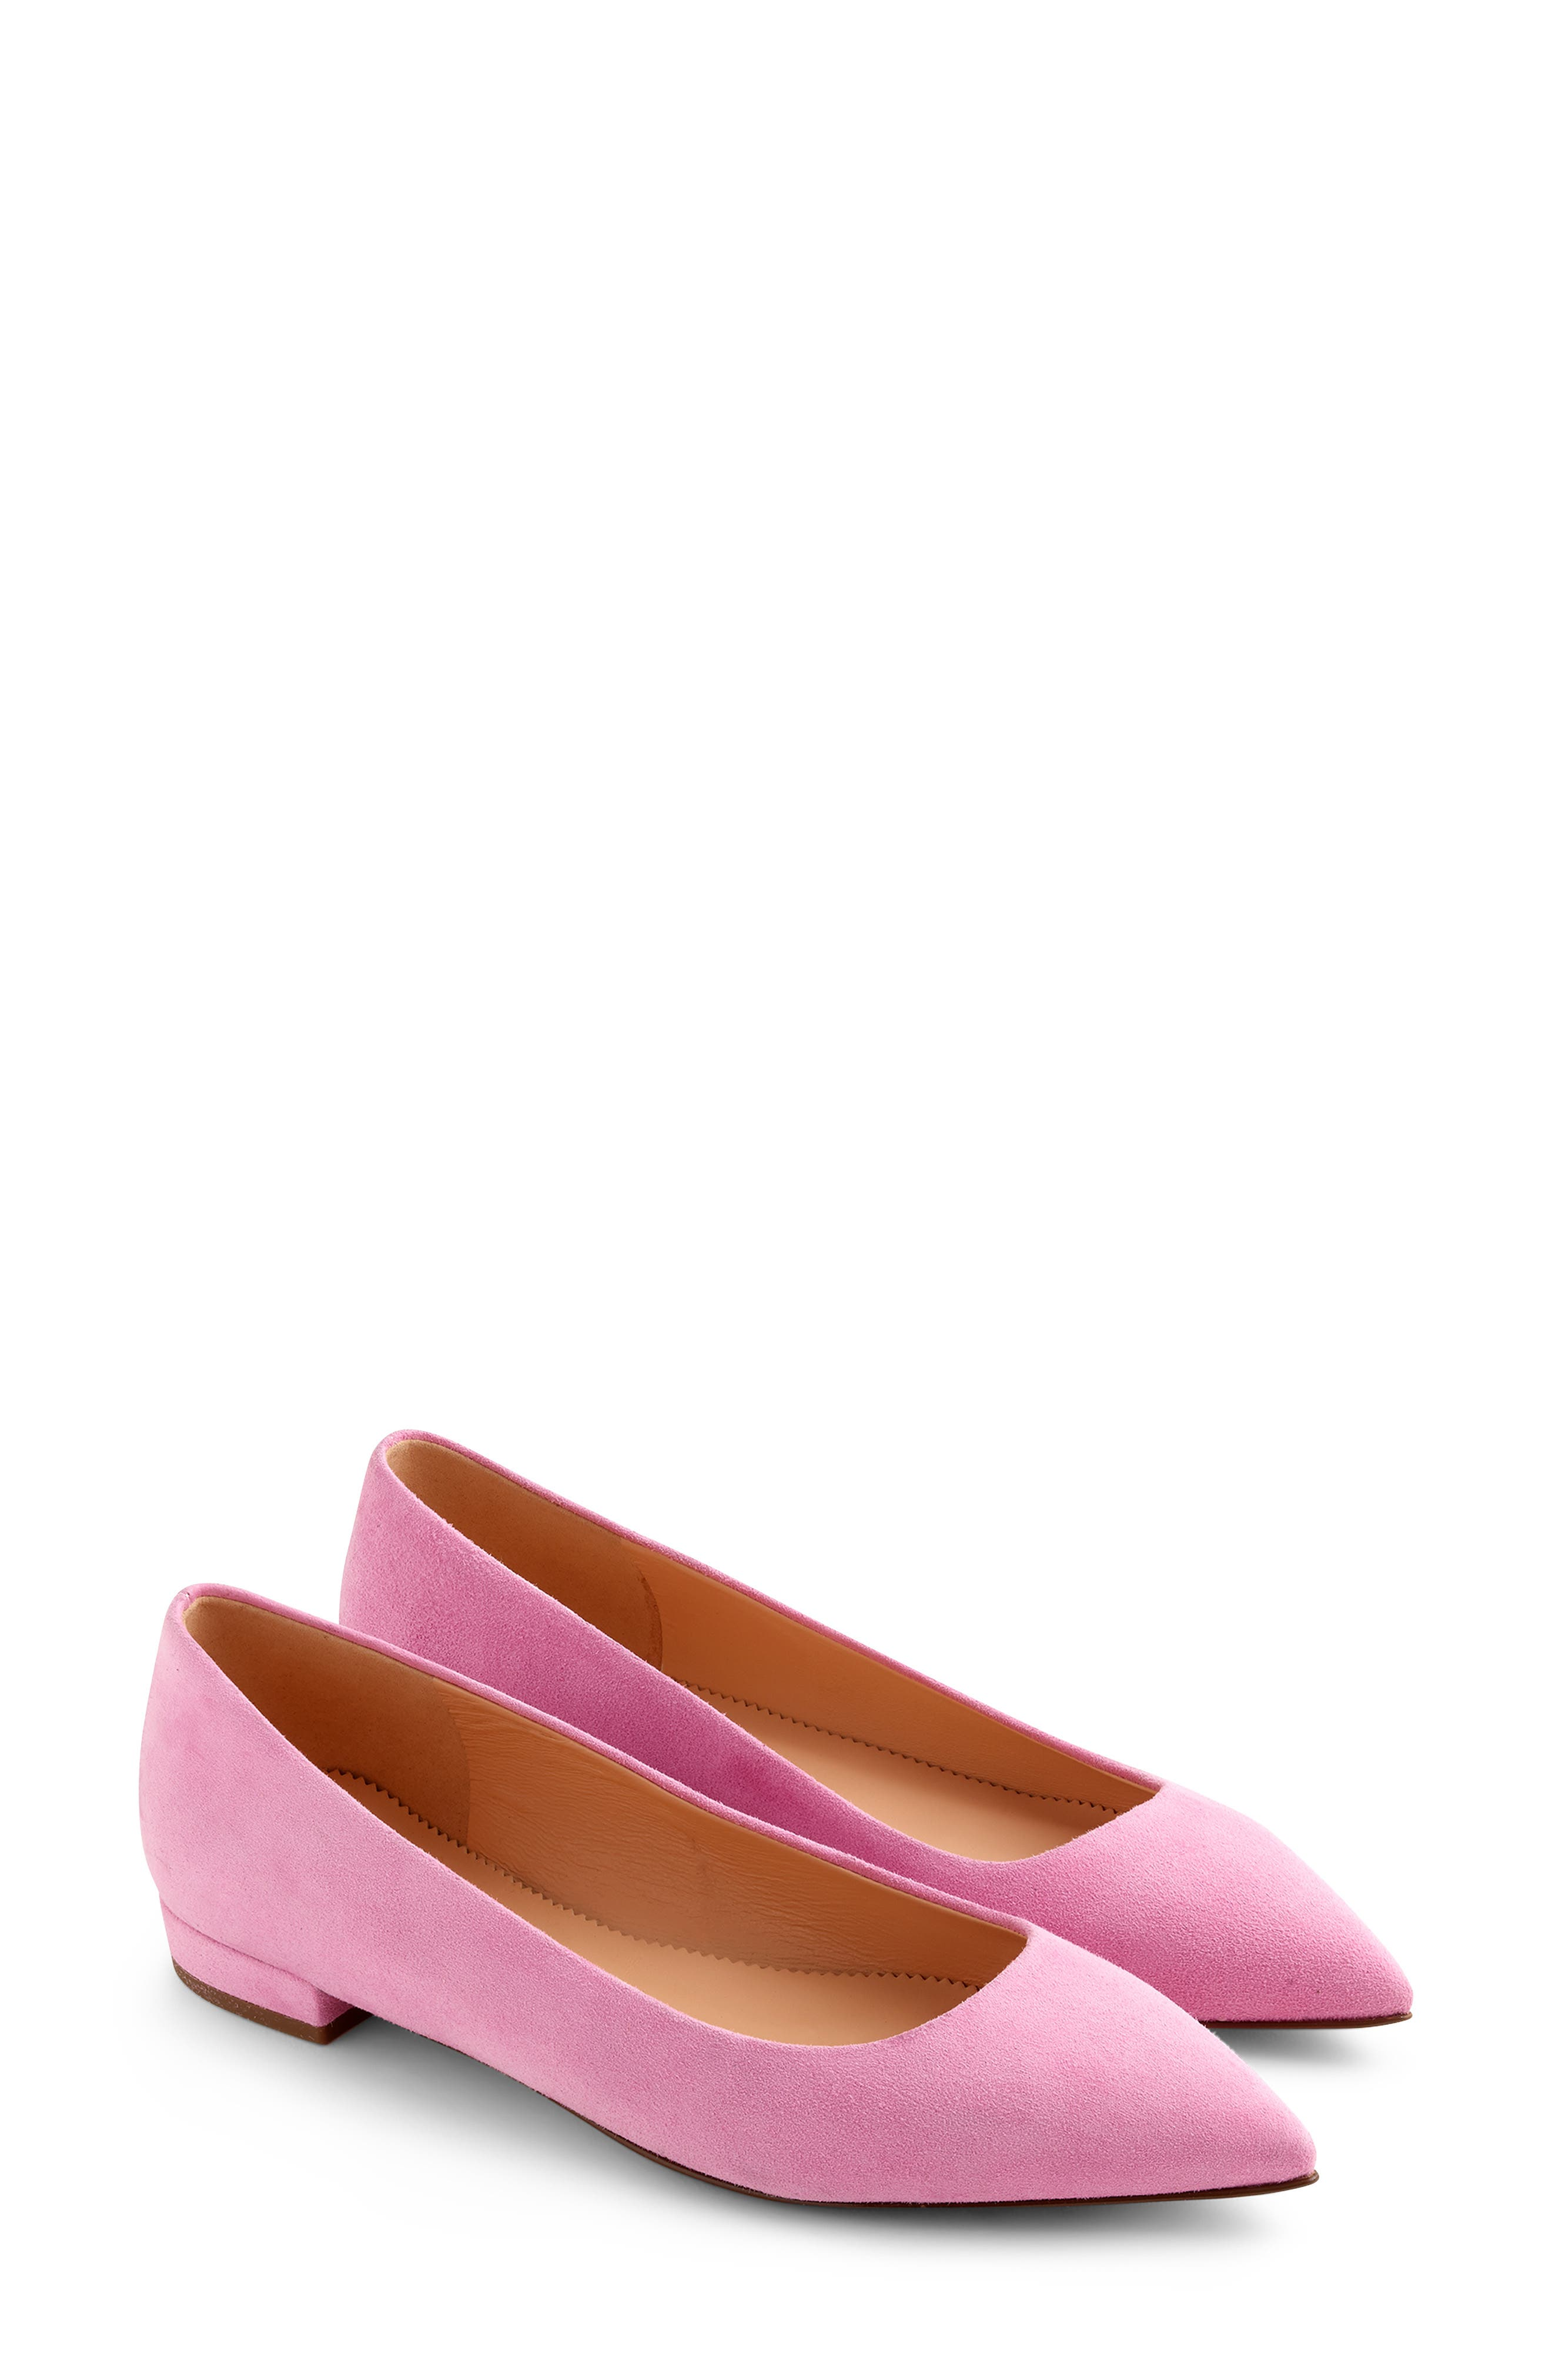 J.crew Pointed Toe Flat- Pink